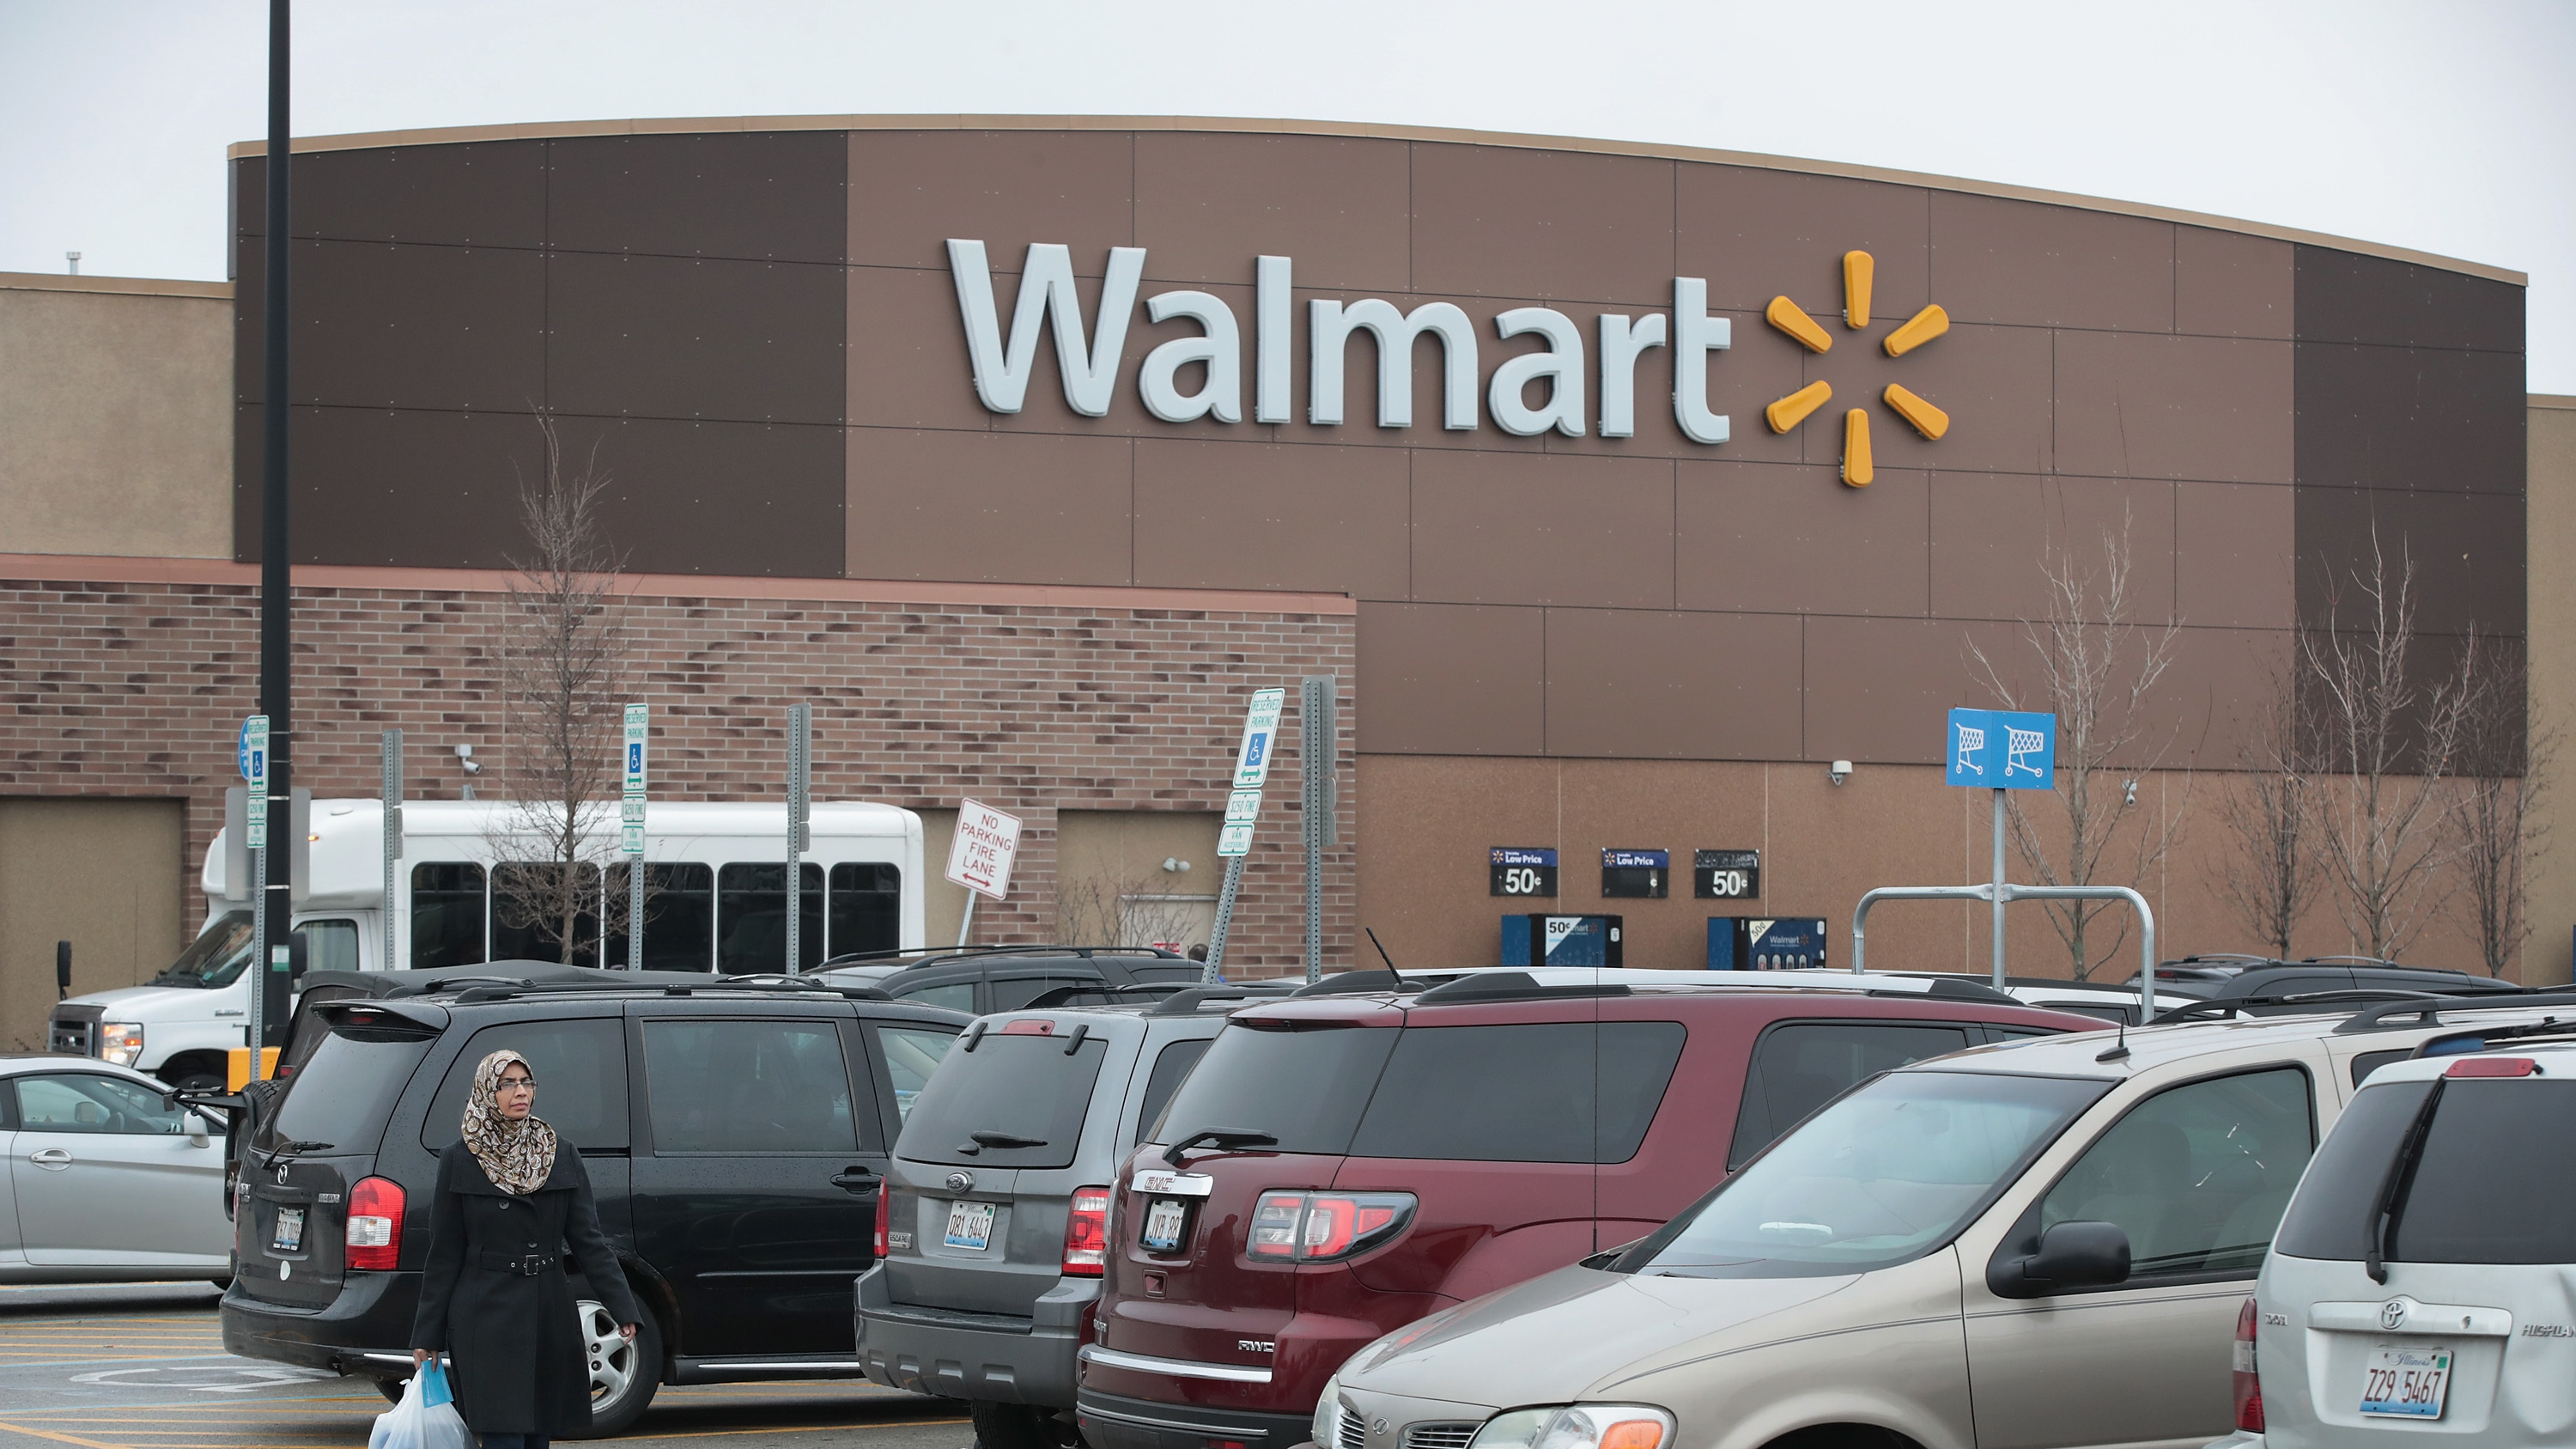 Walmart Joins The Ranks Of US Firms 'Sharing US Tax Reform Benefits'